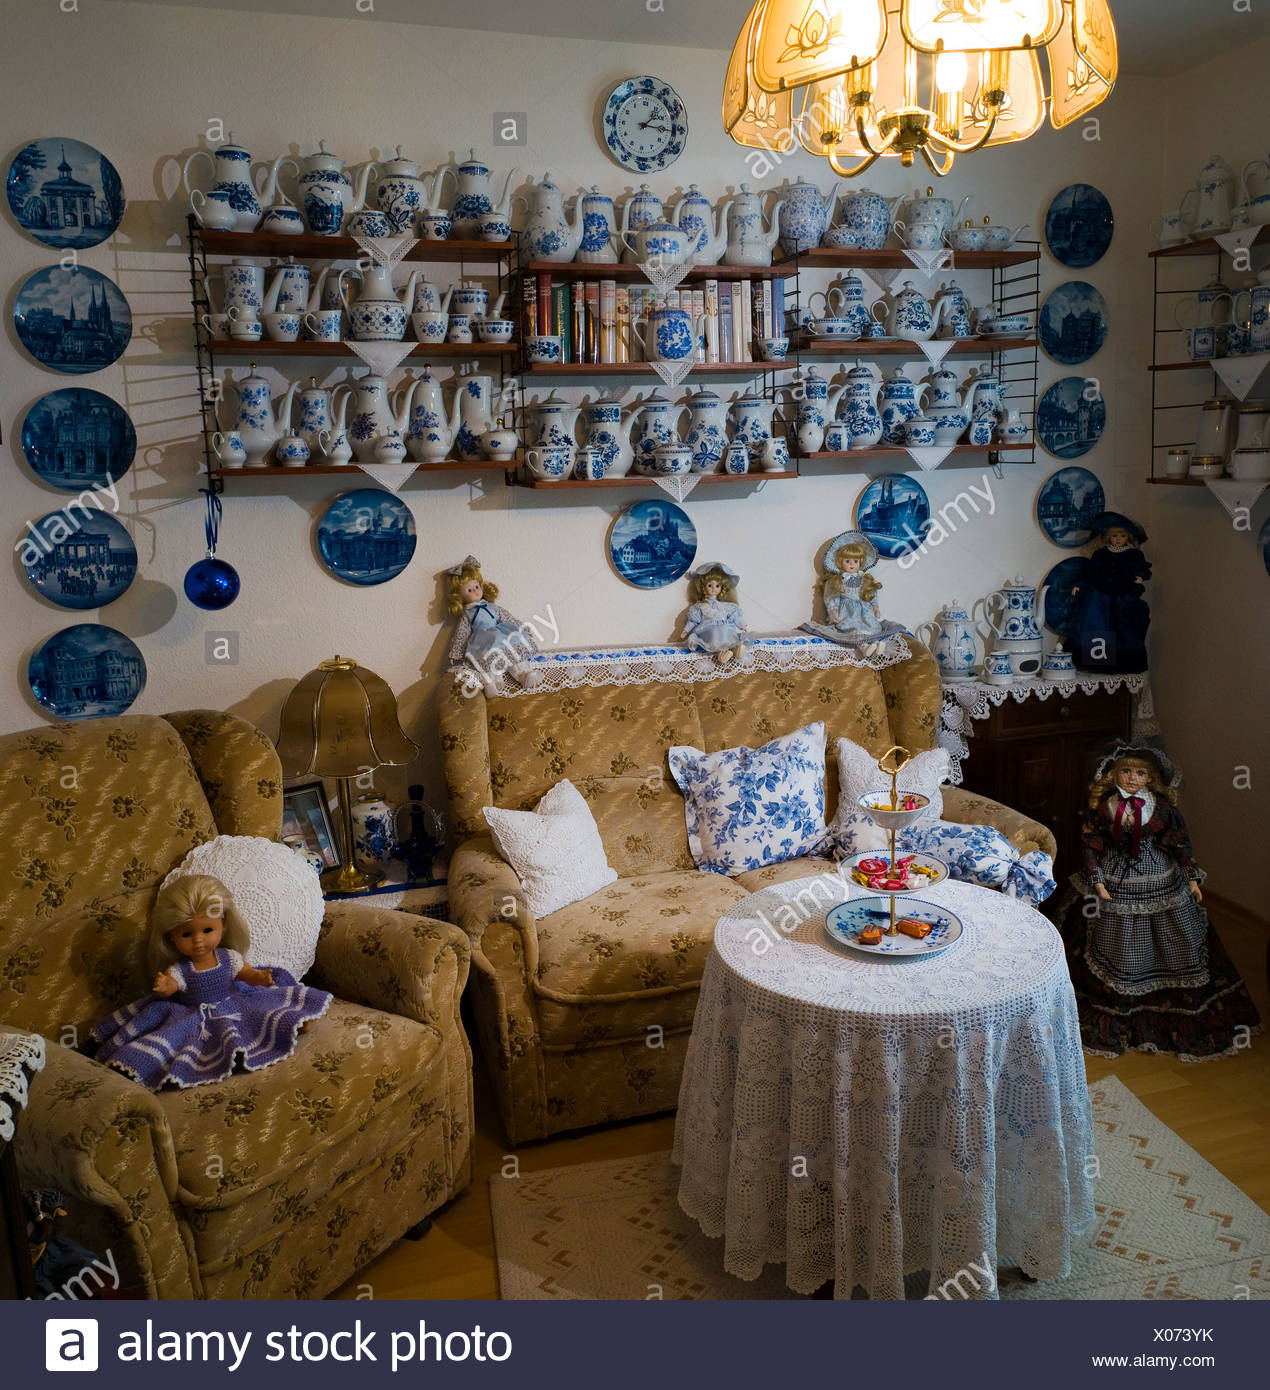 Living room with teapots and dolls, Germany, Europe - Stock Image